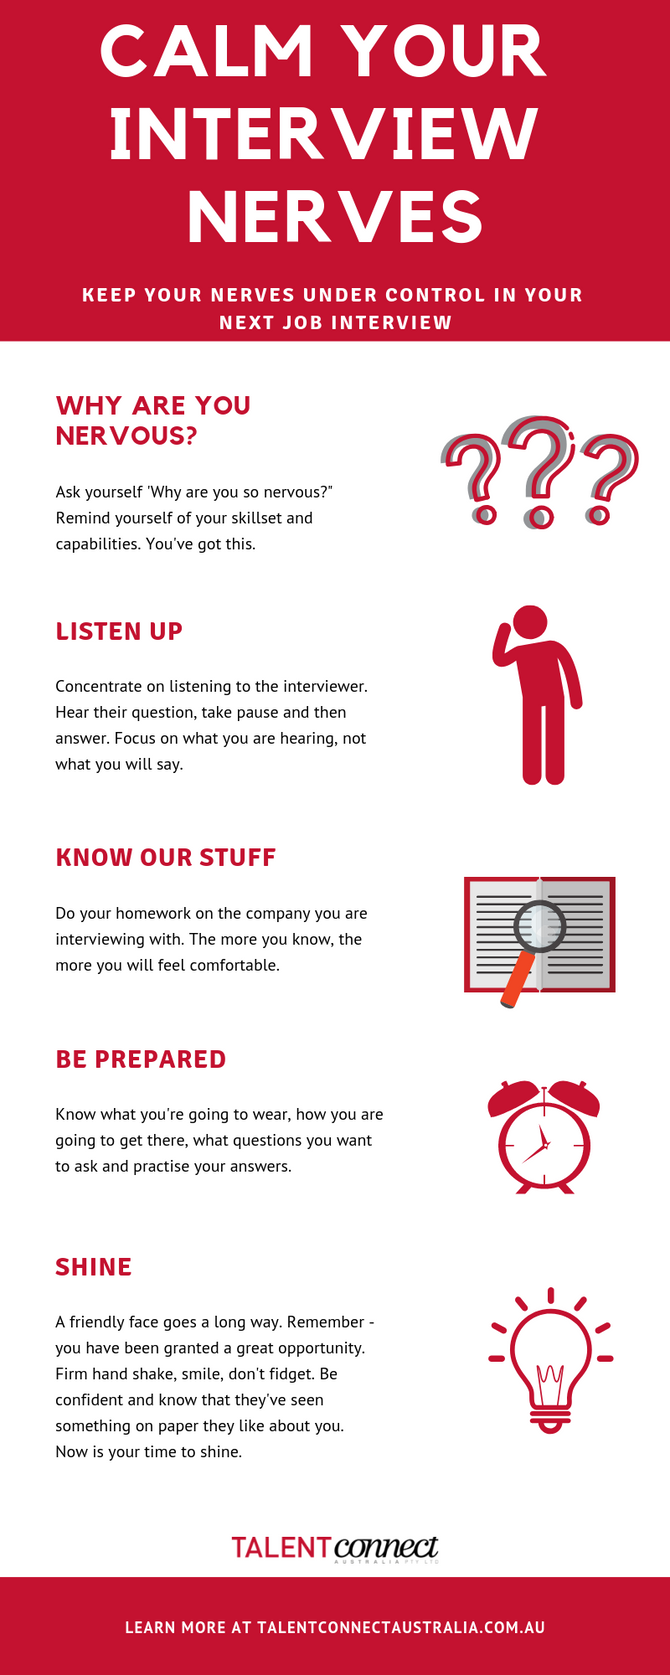 INFOGRAPHIC - CALM YOUR INTERVIEW NERVES